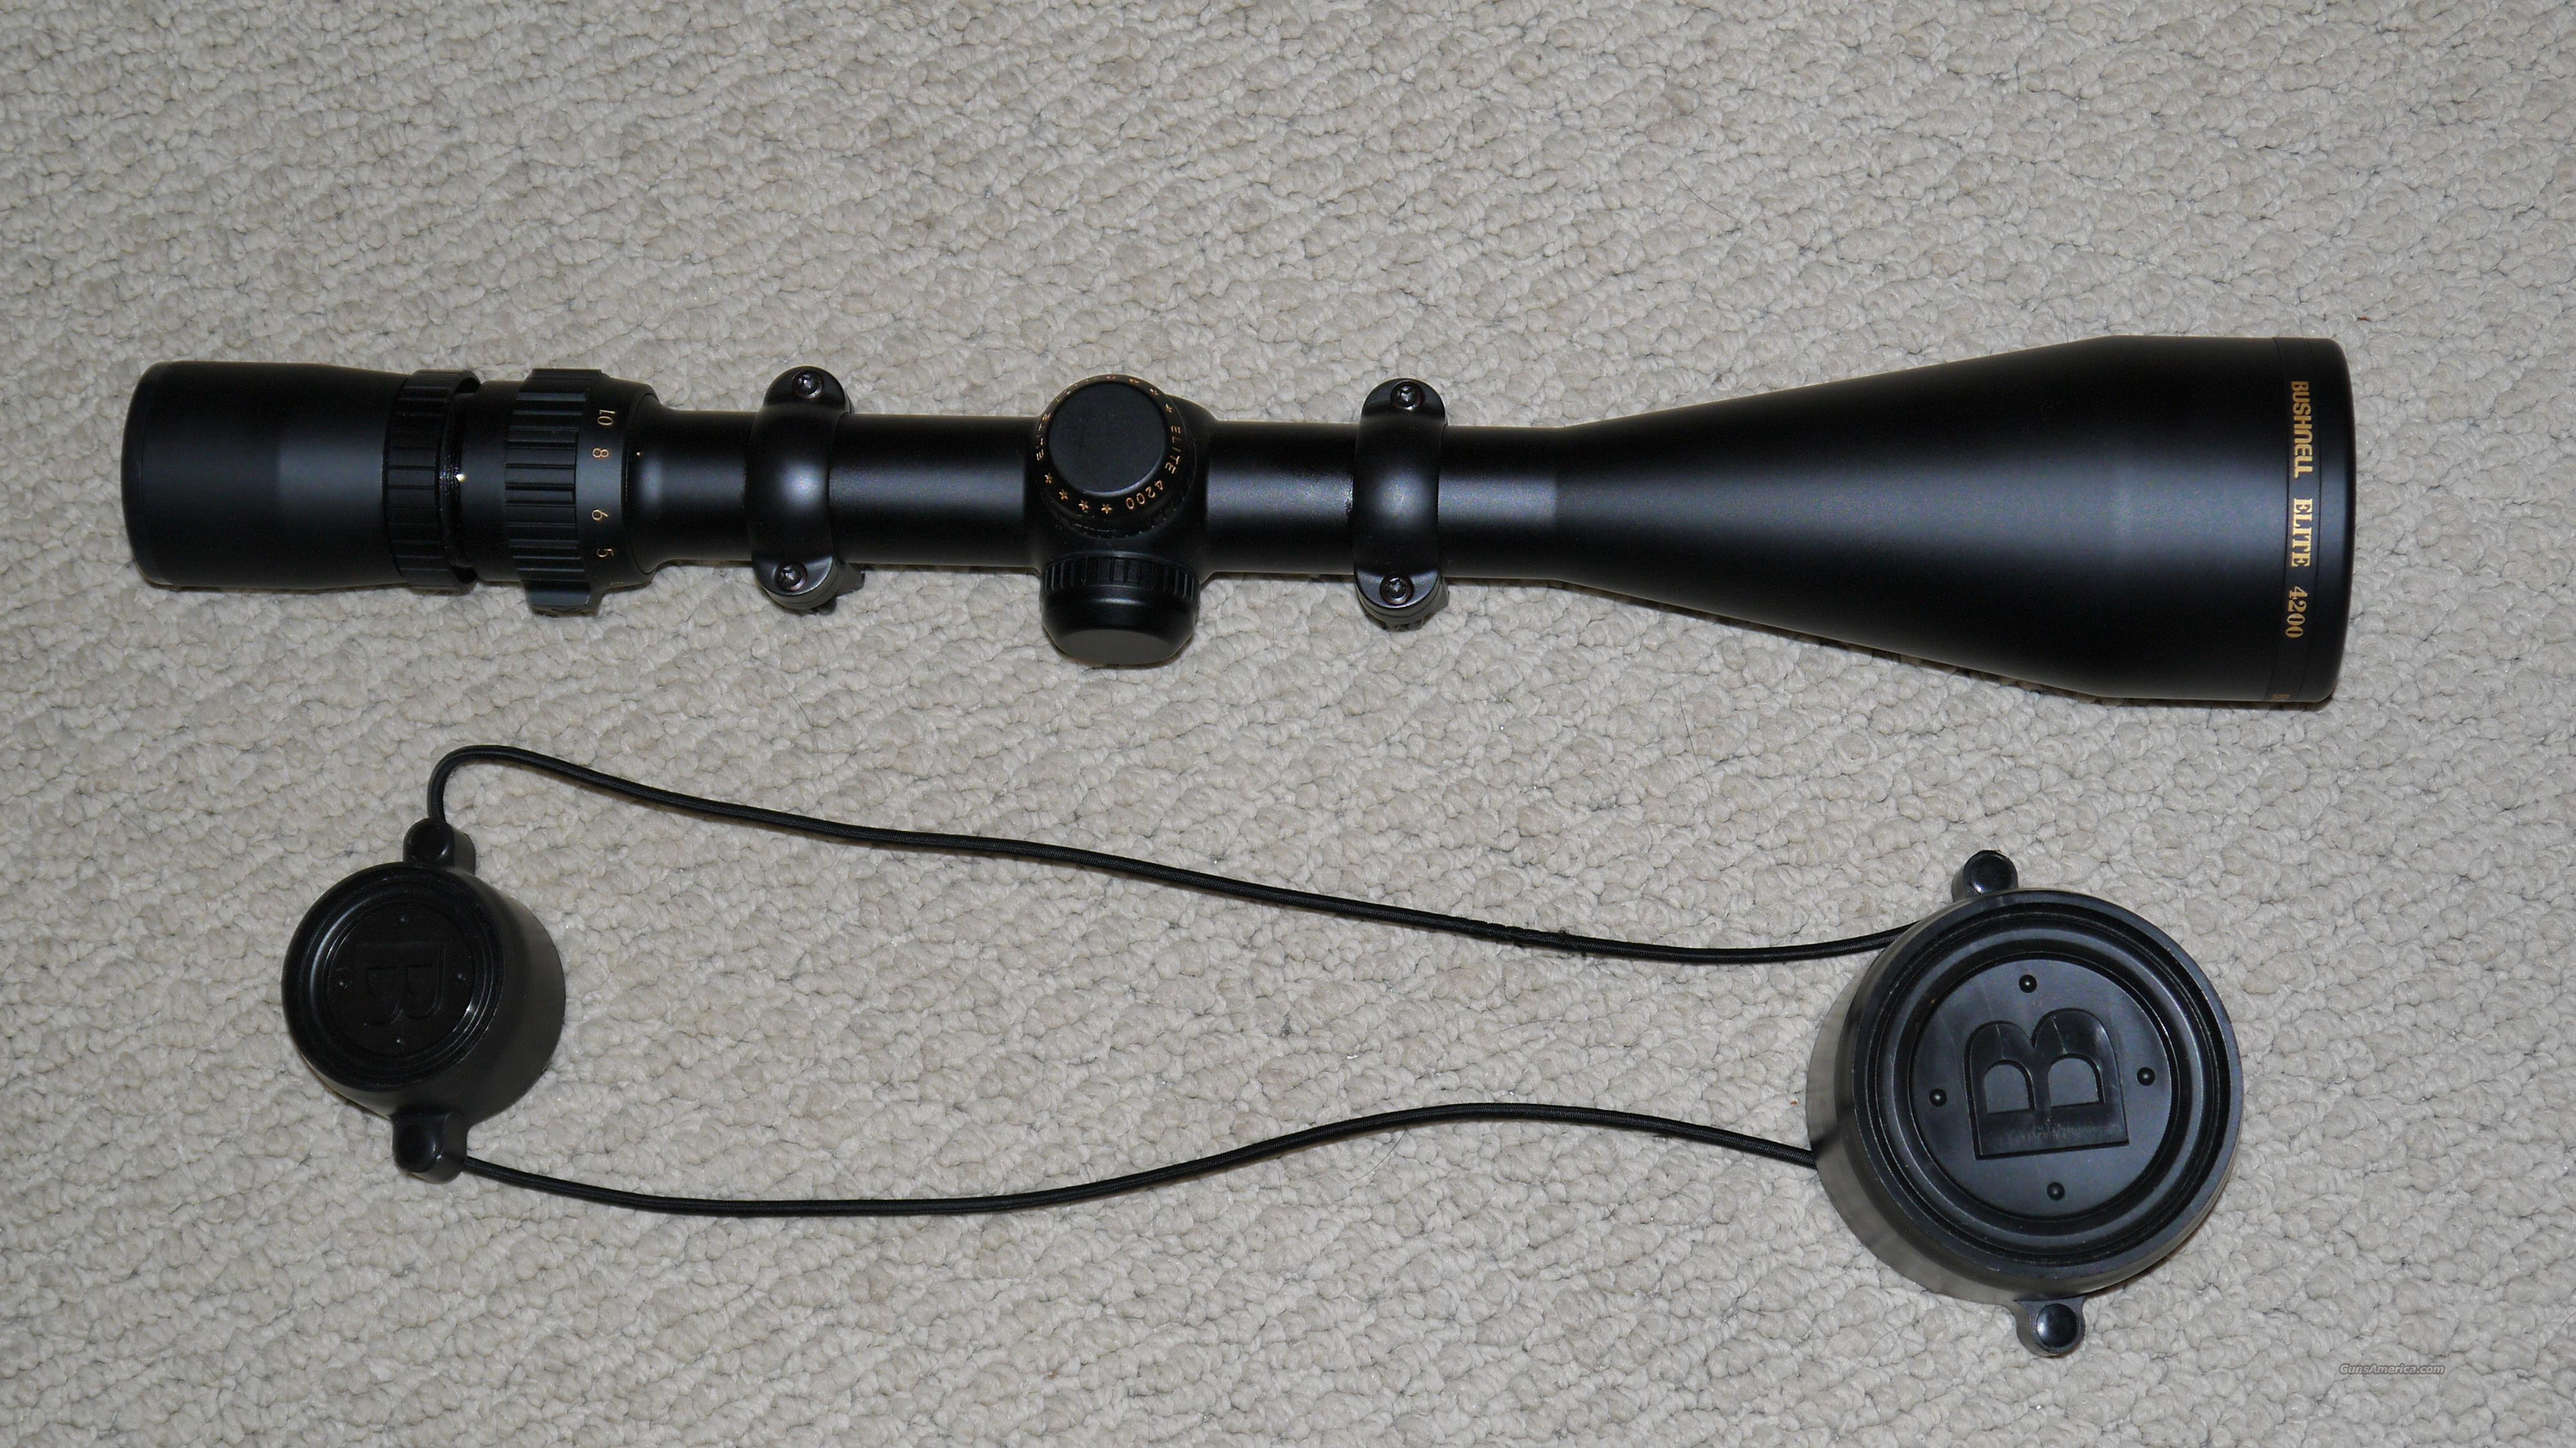 Bushnell Elite 4200 2.5X10X50 Scope  Non-Guns > Scopes/Mounts/Rings & Optics > Rifle Scopes > Variable Focal Length